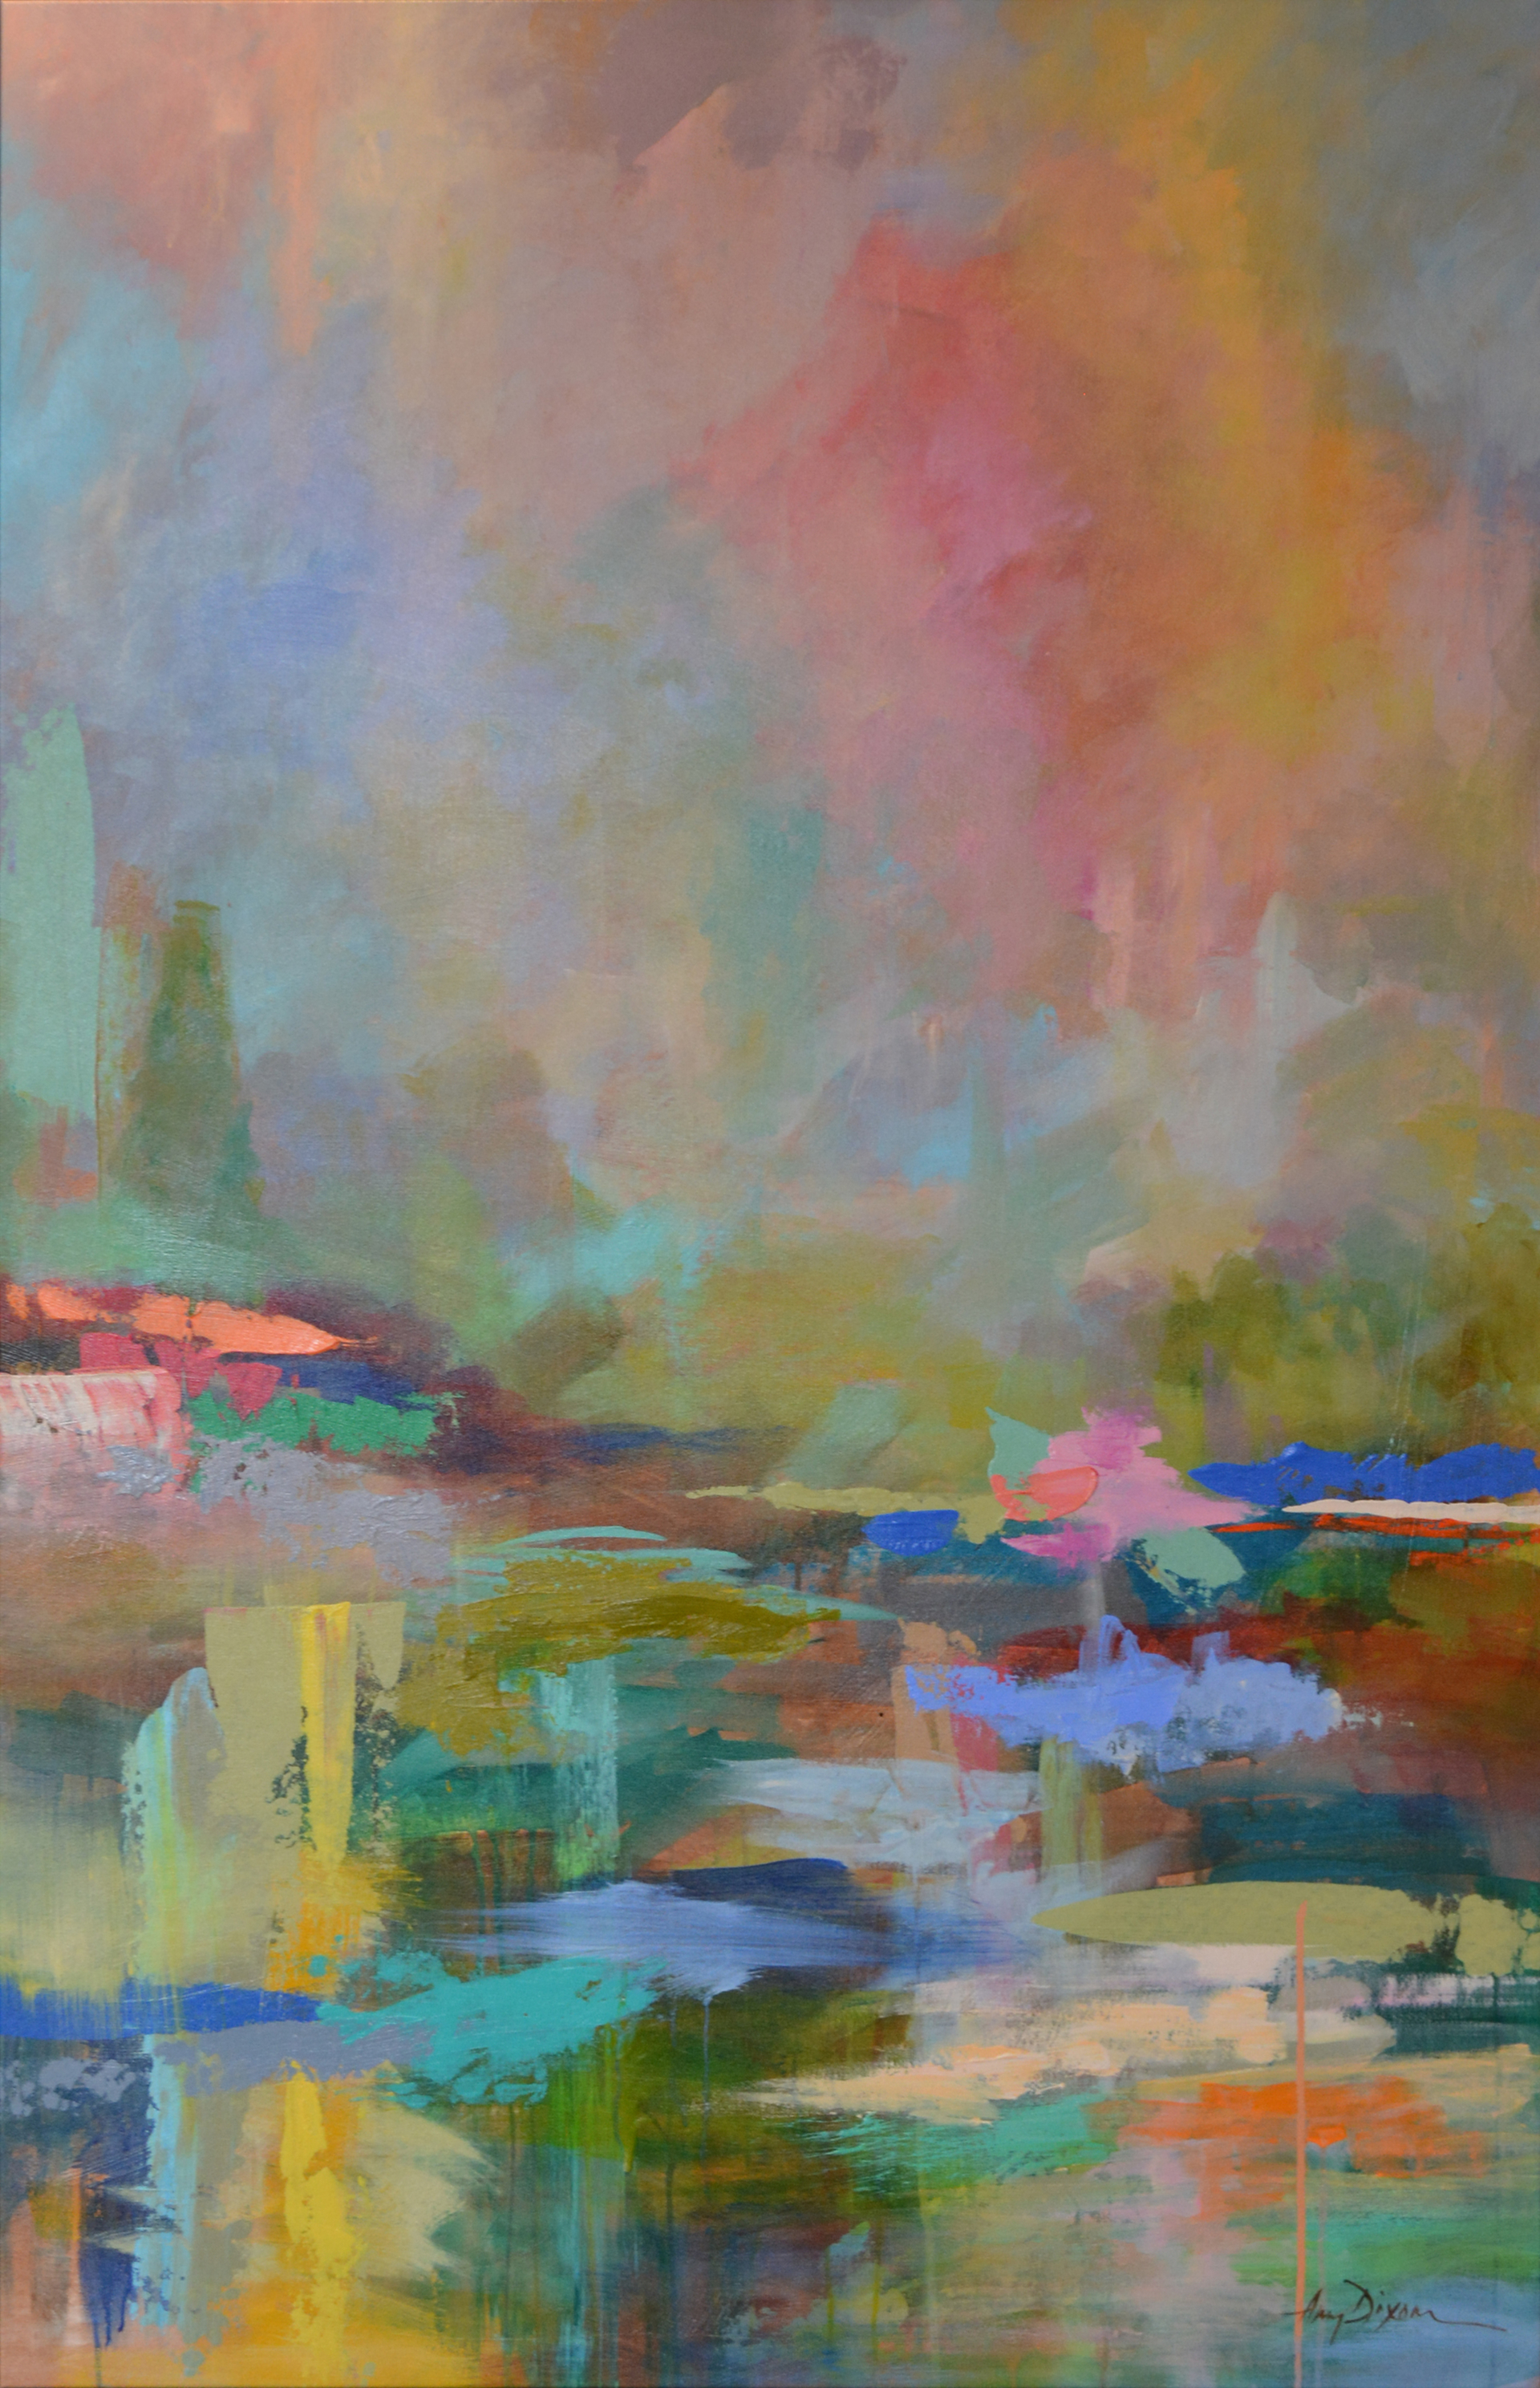 Her River by Amy Dixon